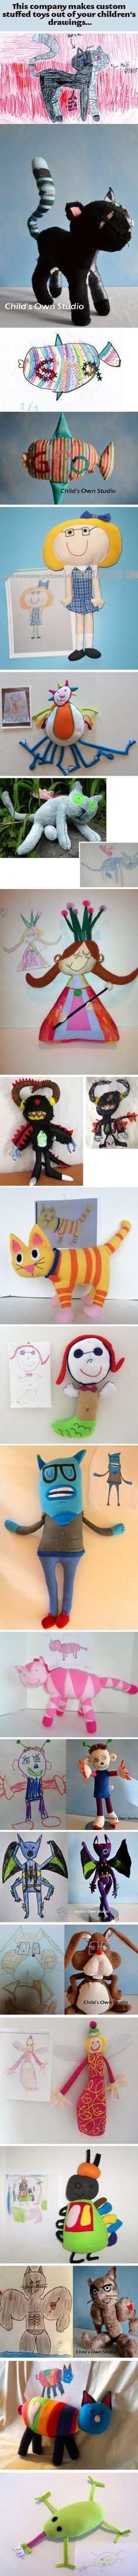 Custom stuffed toys from children's drawings. I should do this with MY drawings!!!